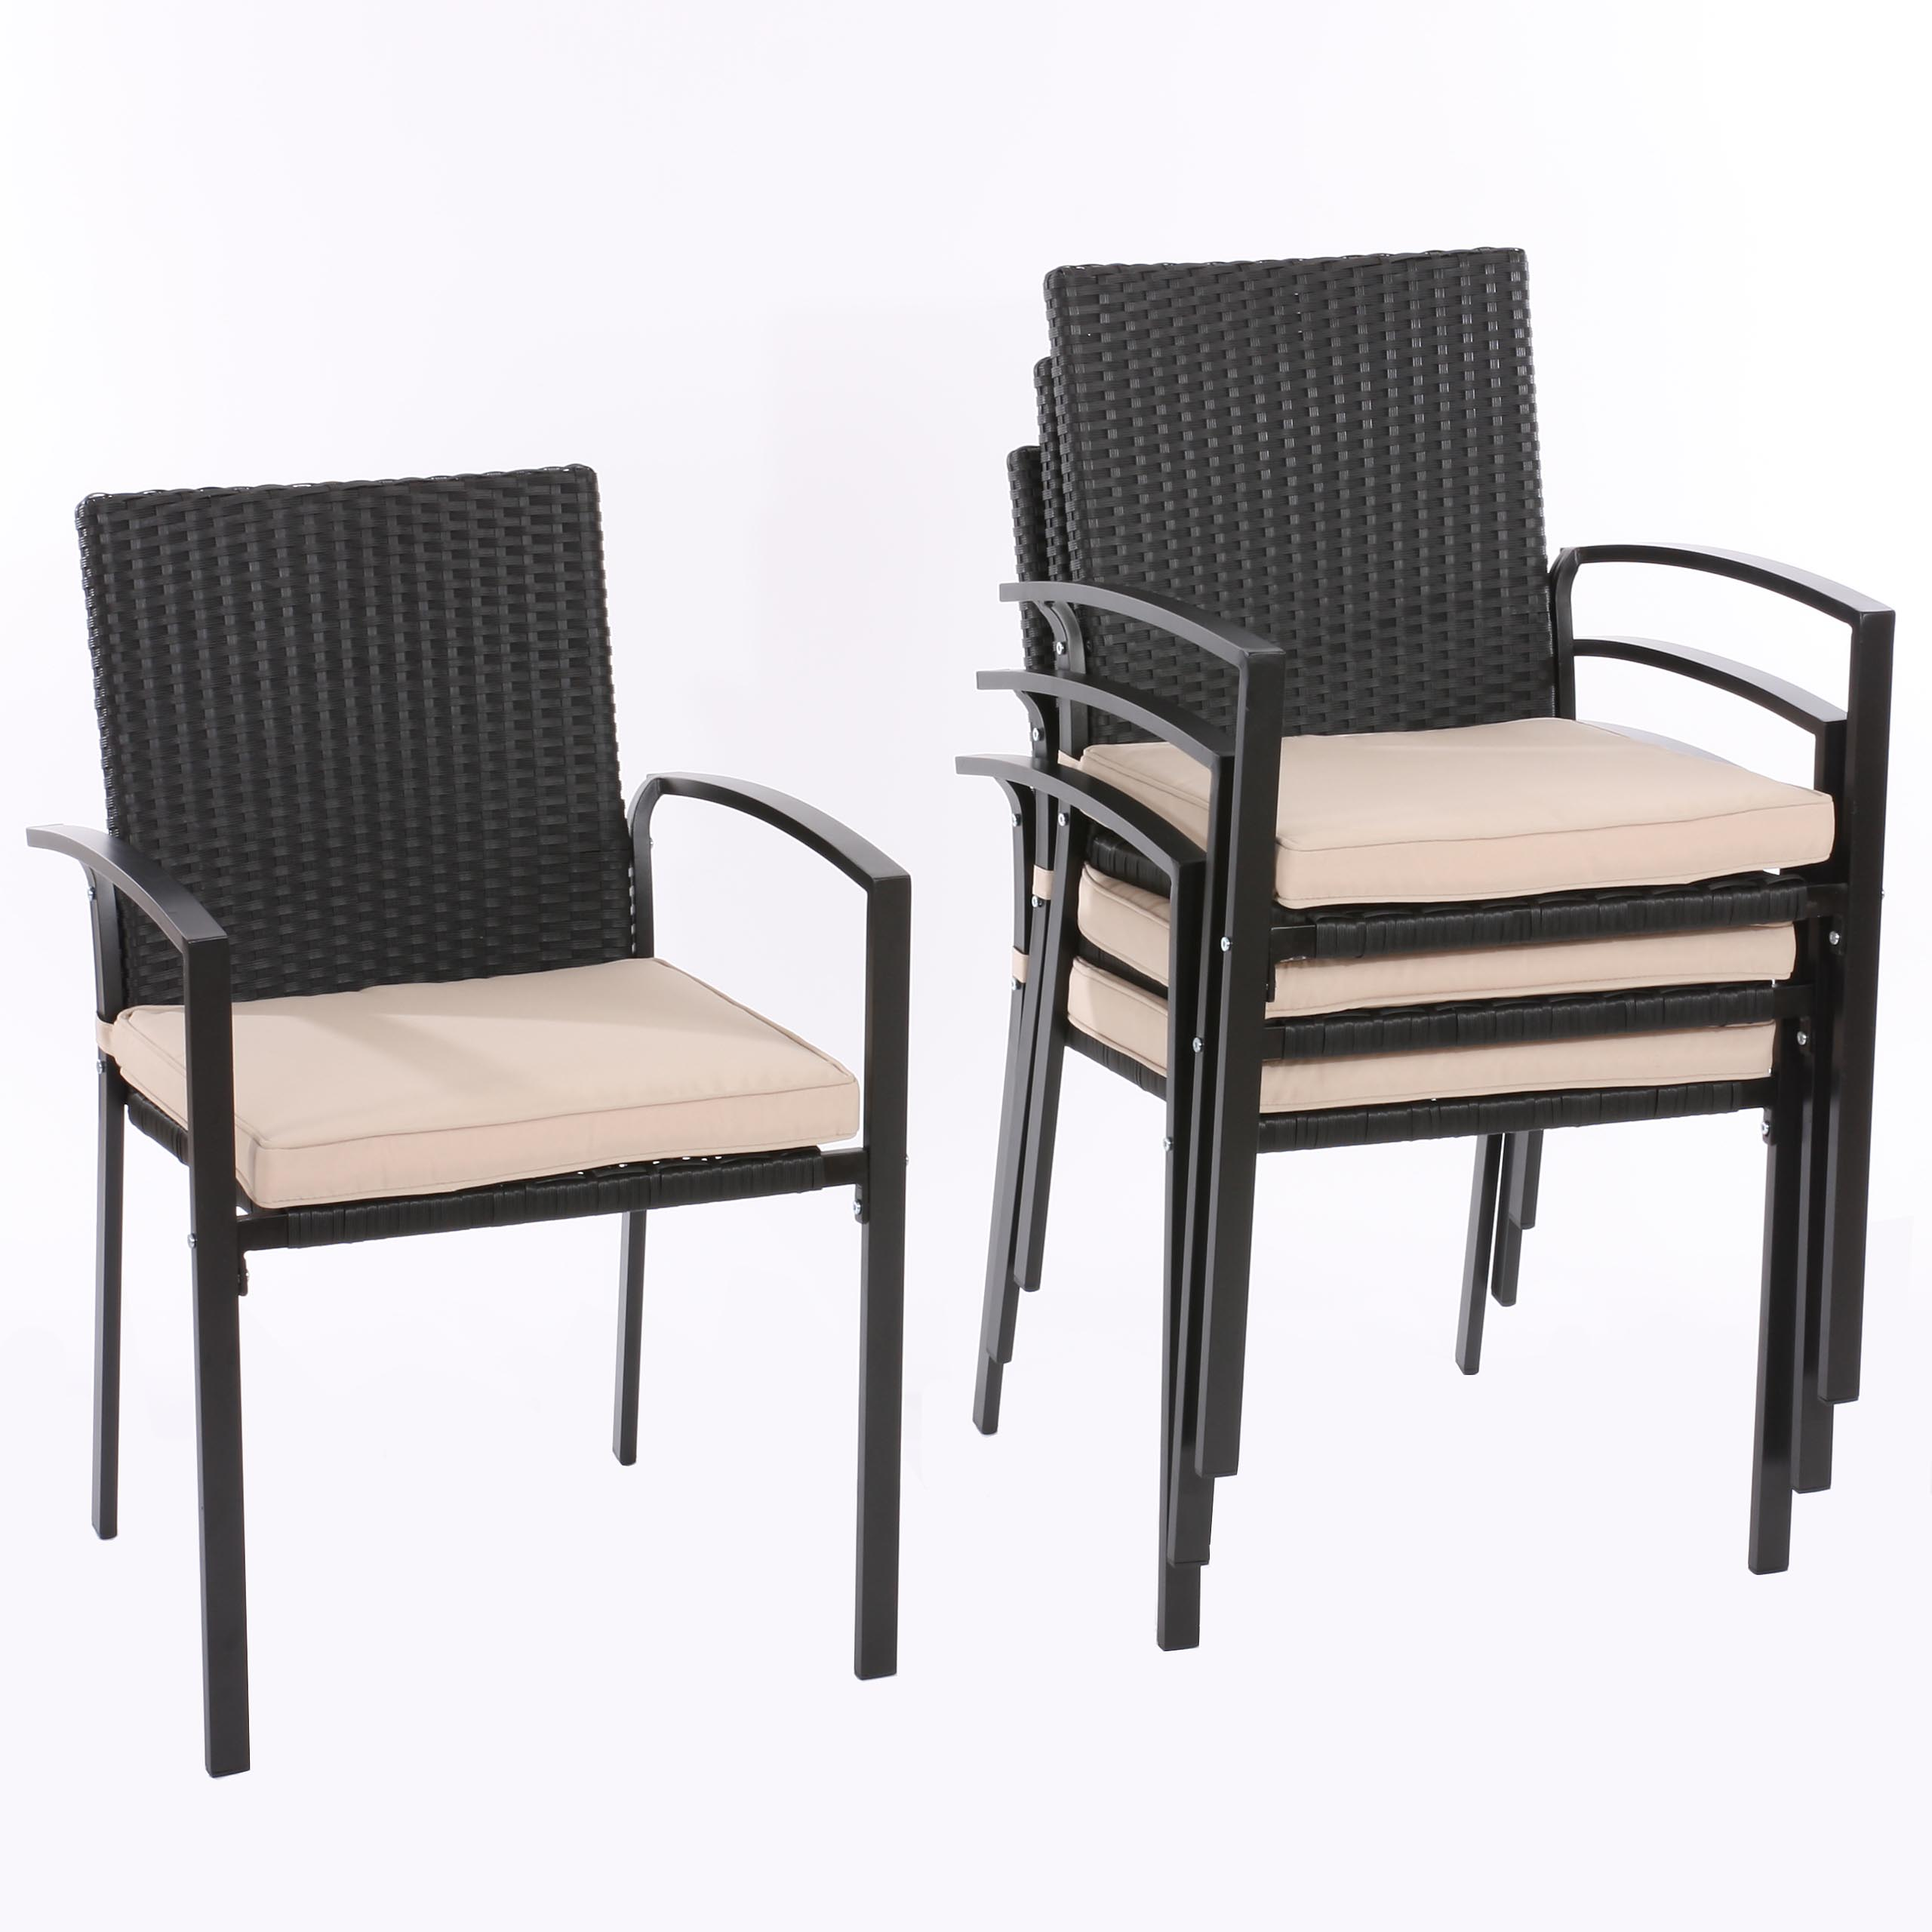 poly rattan gartenstuhl stapelstuhl palma inkl sitzkissen ebay. Black Bedroom Furniture Sets. Home Design Ideas